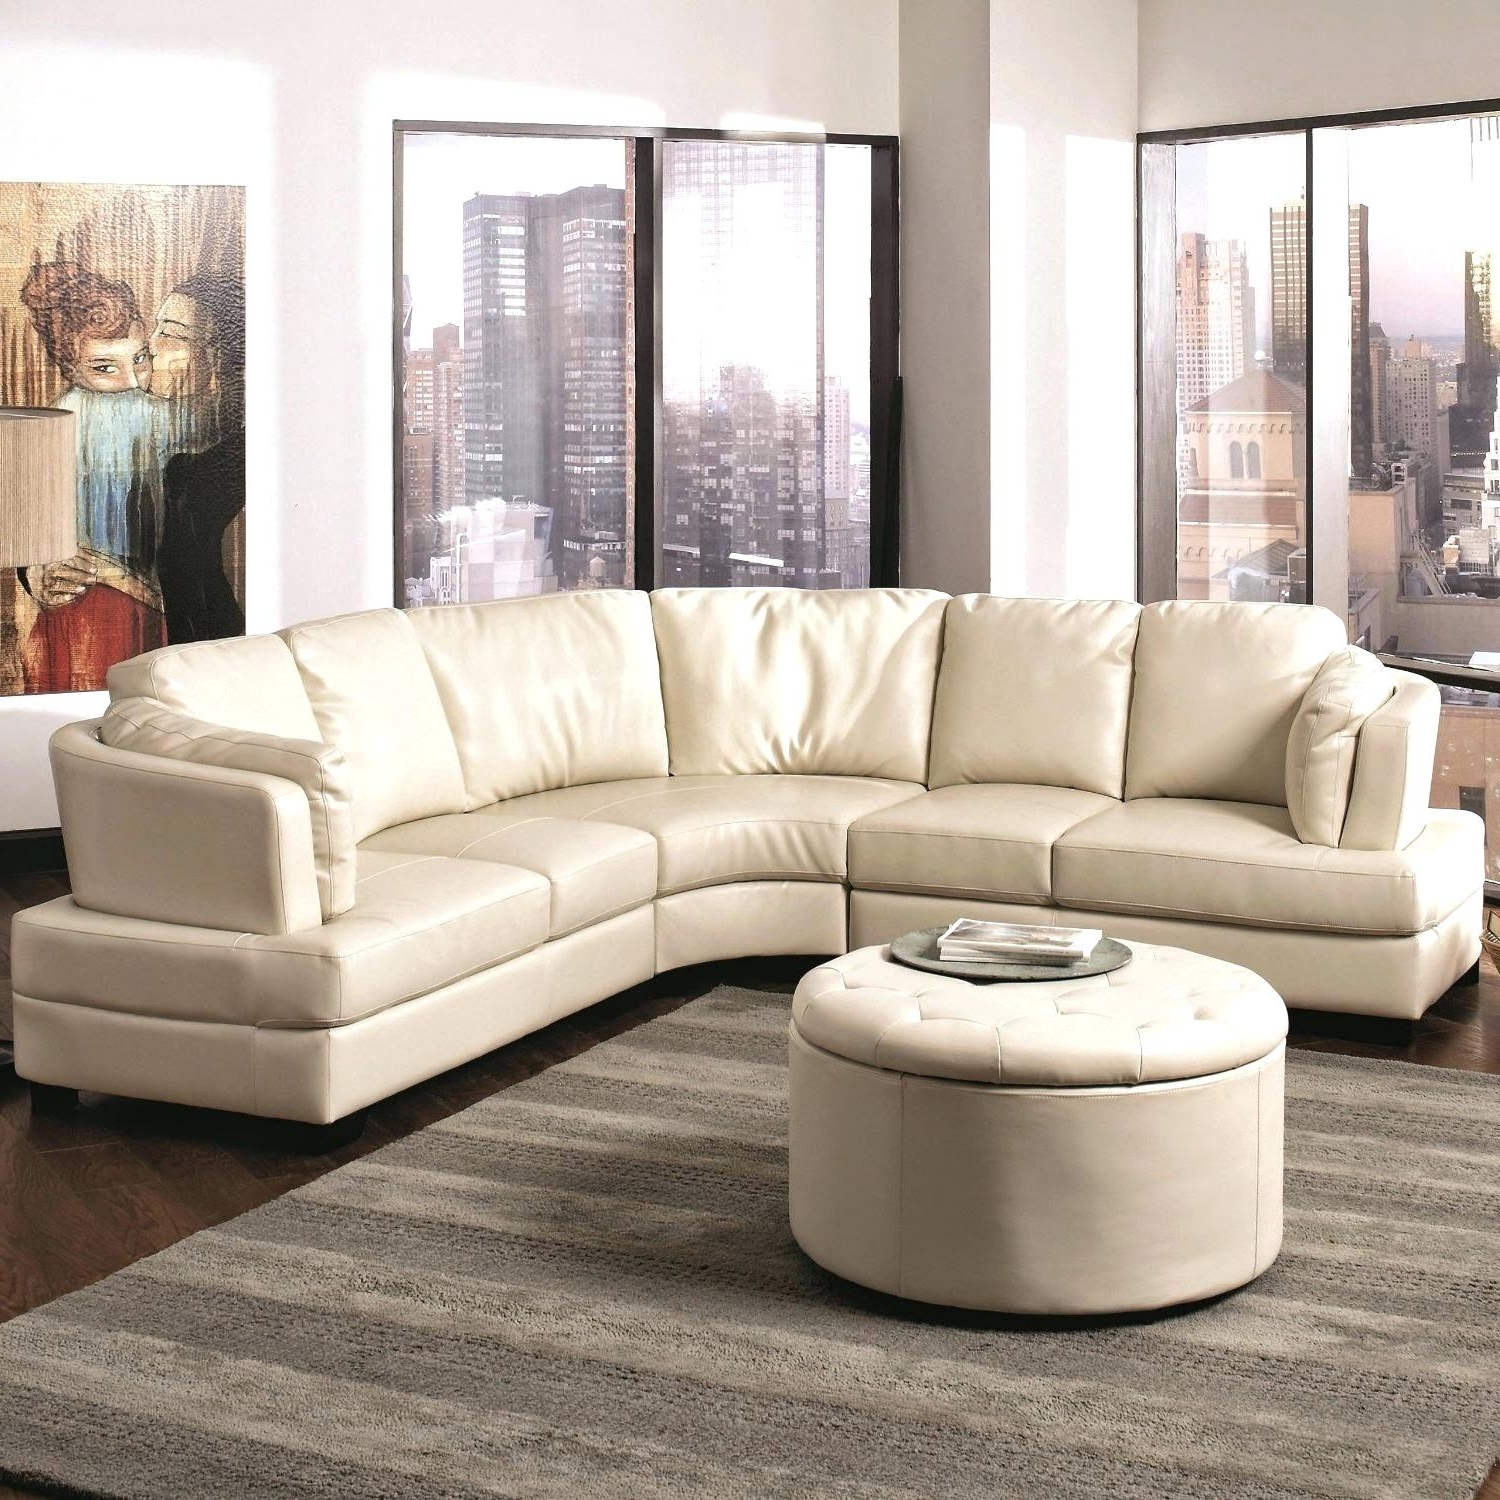 Newmarket Ontario Sectional Sofas For 2018 Sectional Sofa Sale Sa Couches For Near Me Liquidation Toronto (View 10 of 20)